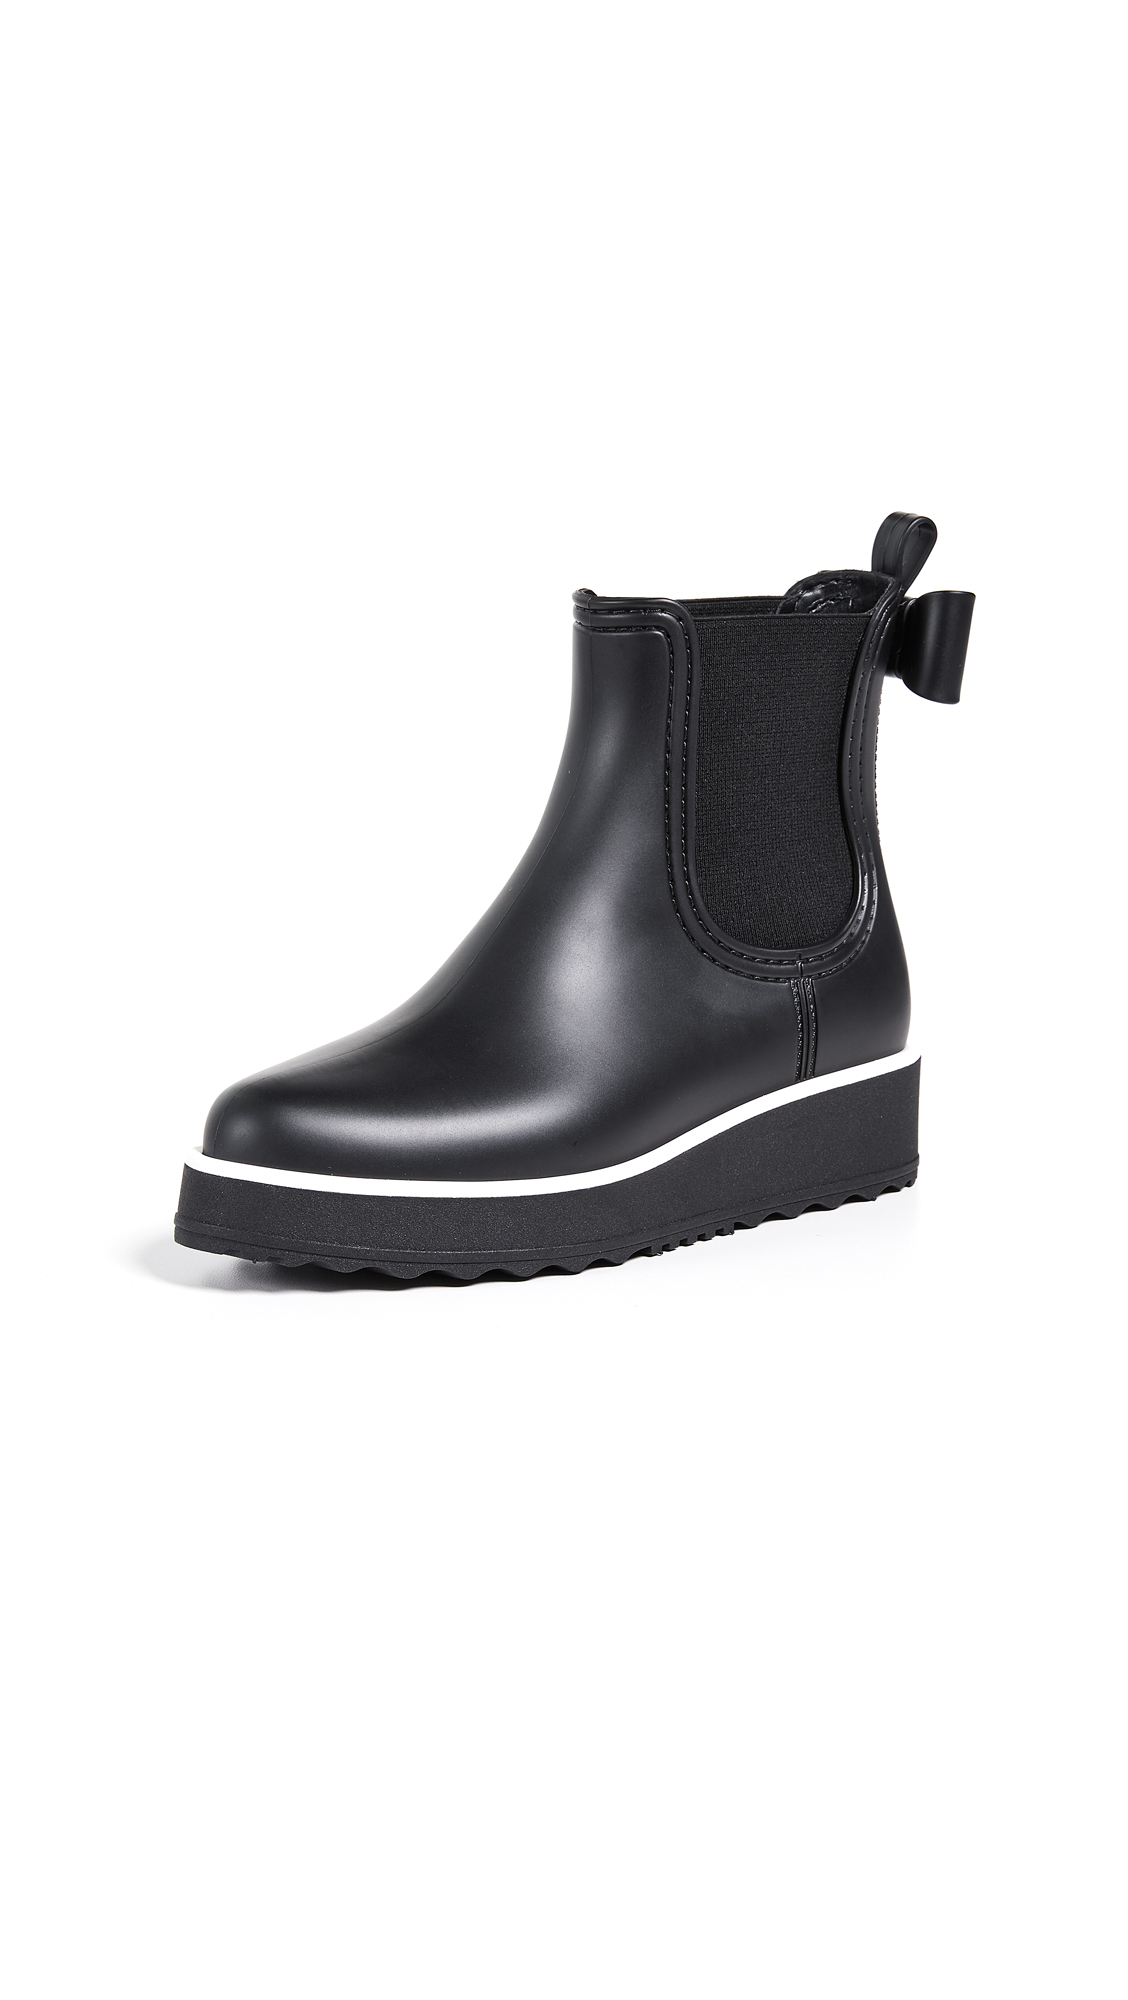 Kate Spade New York Malcom Rain Booties - Black